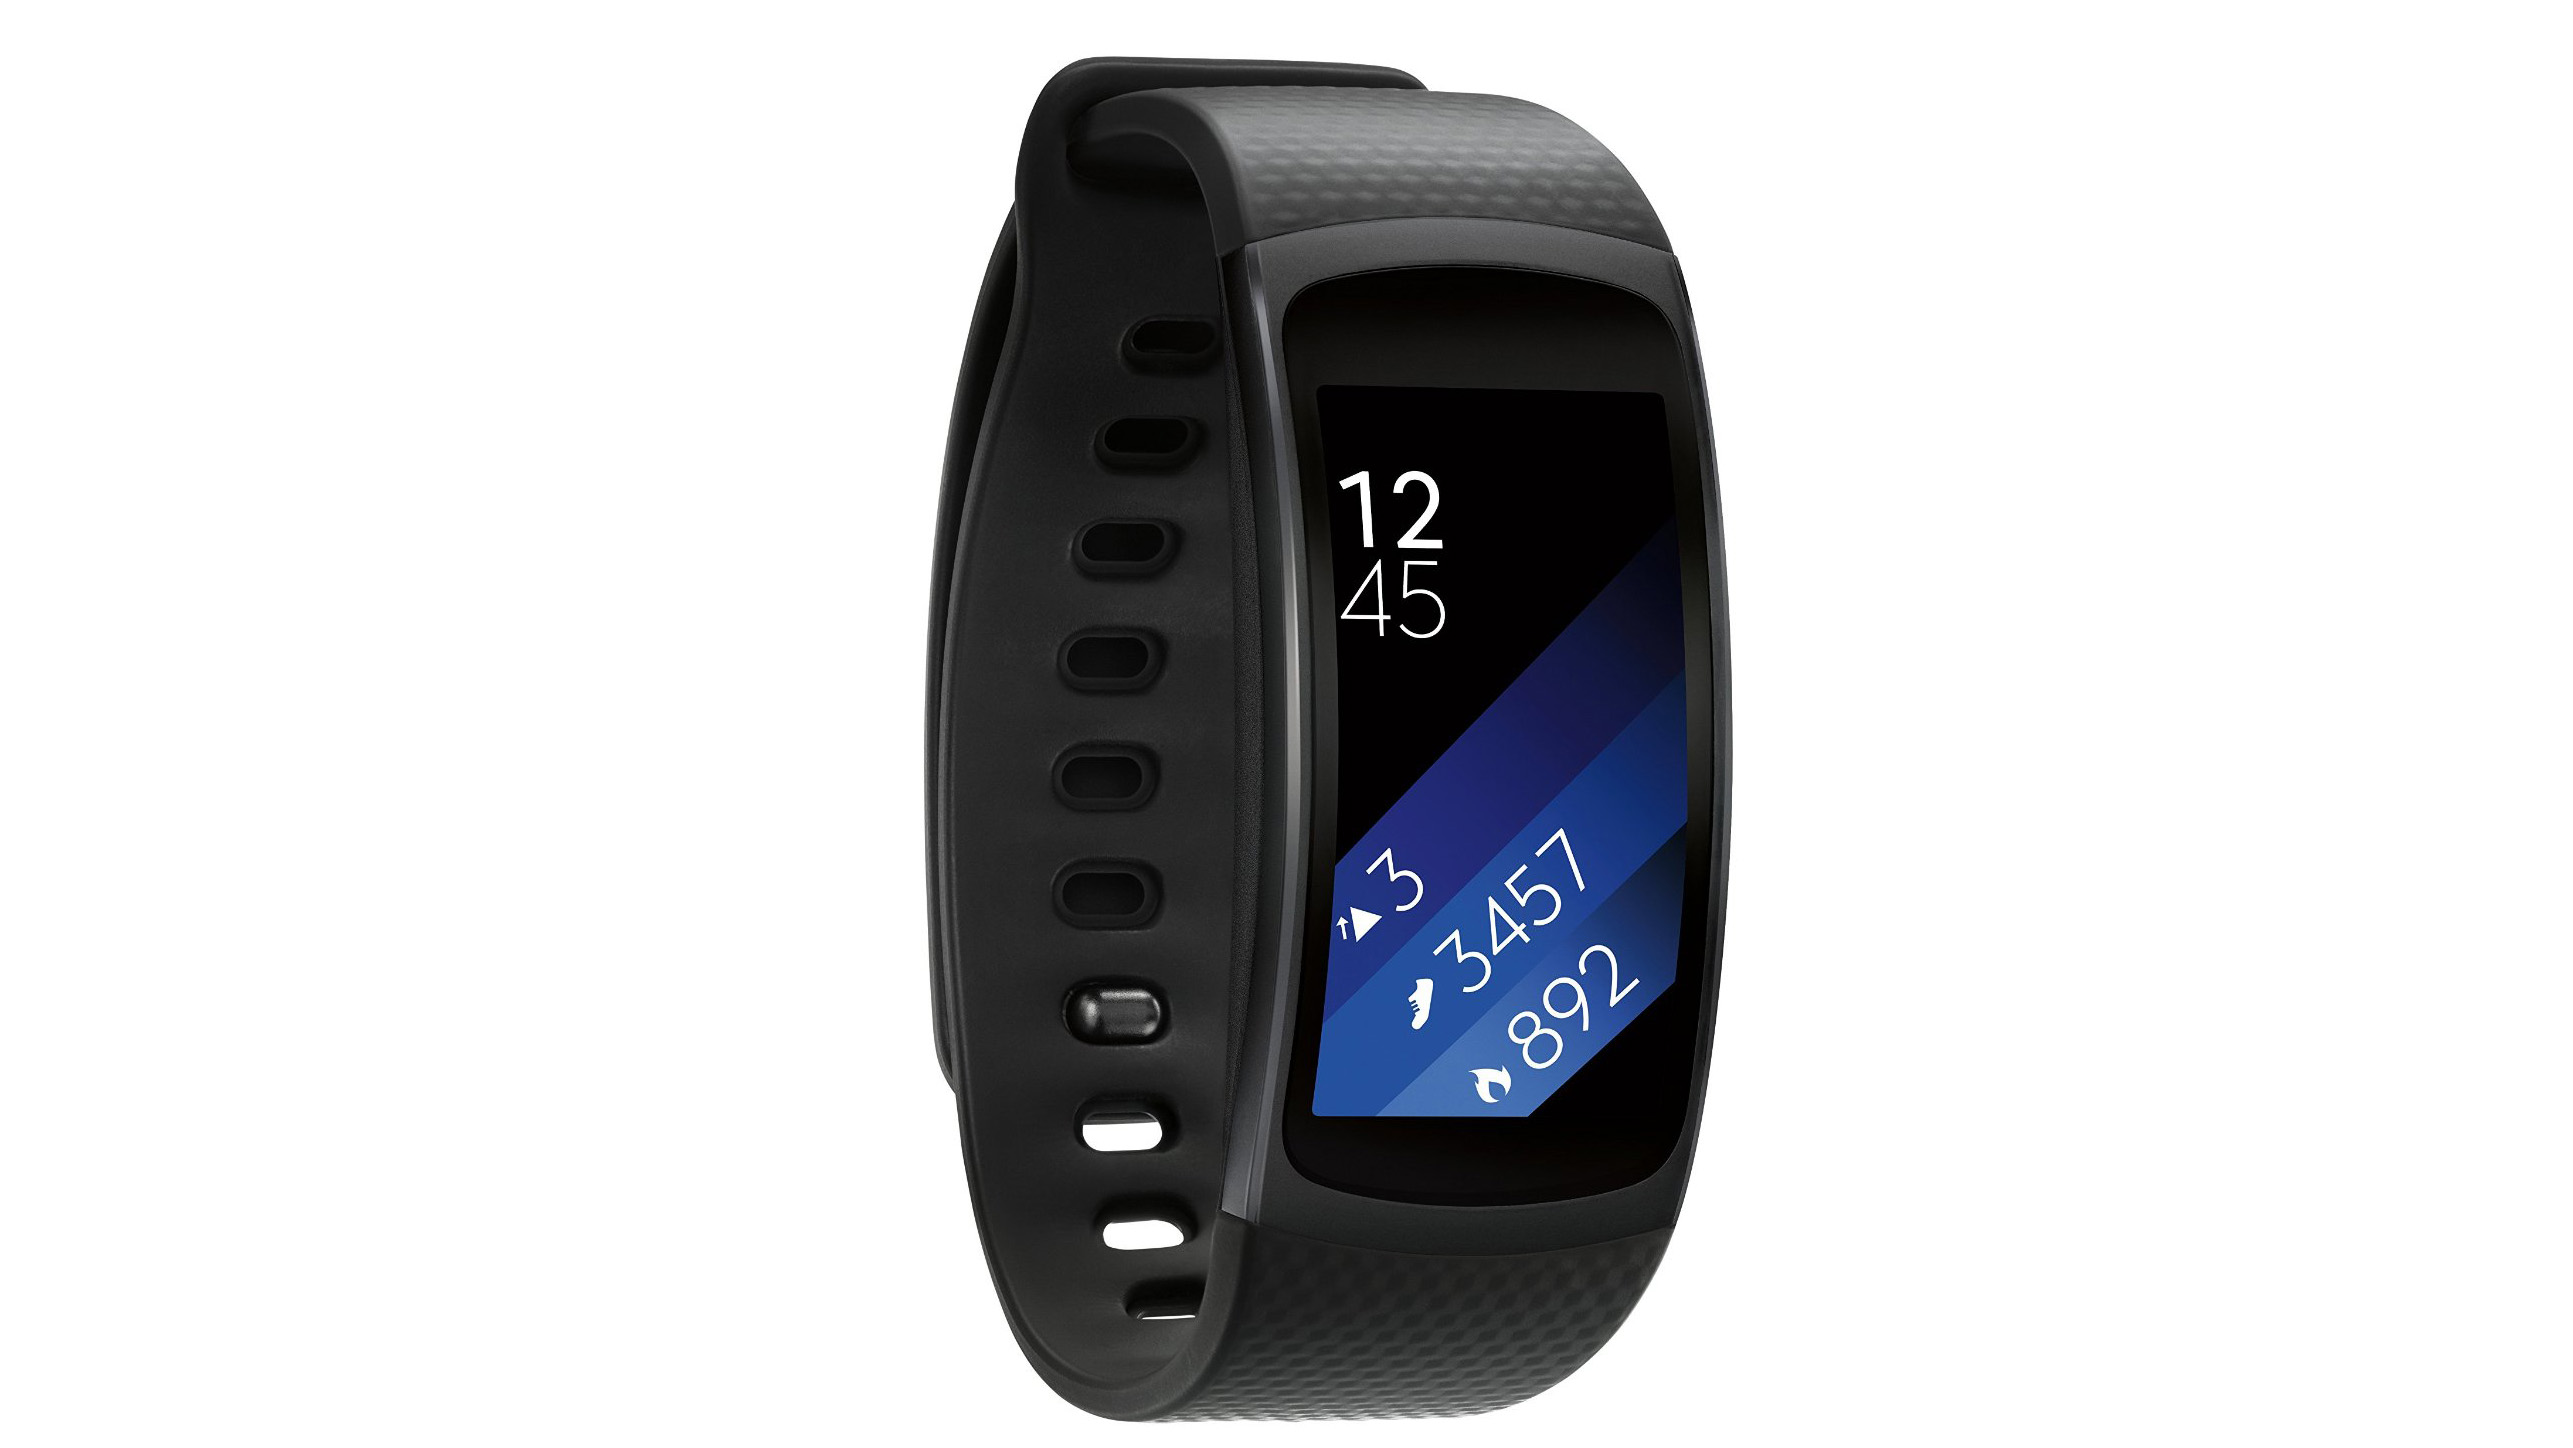 Samsung gear fit 2 lands on verizon Blog 19703 furthermore American Sweetgum besides Best Gps Tracker Ios together with Samsung Galaxy Pro With Qwerty Announced For Next Month together with Ask The 5 Ws When Deciding On A Crm. on small gps device